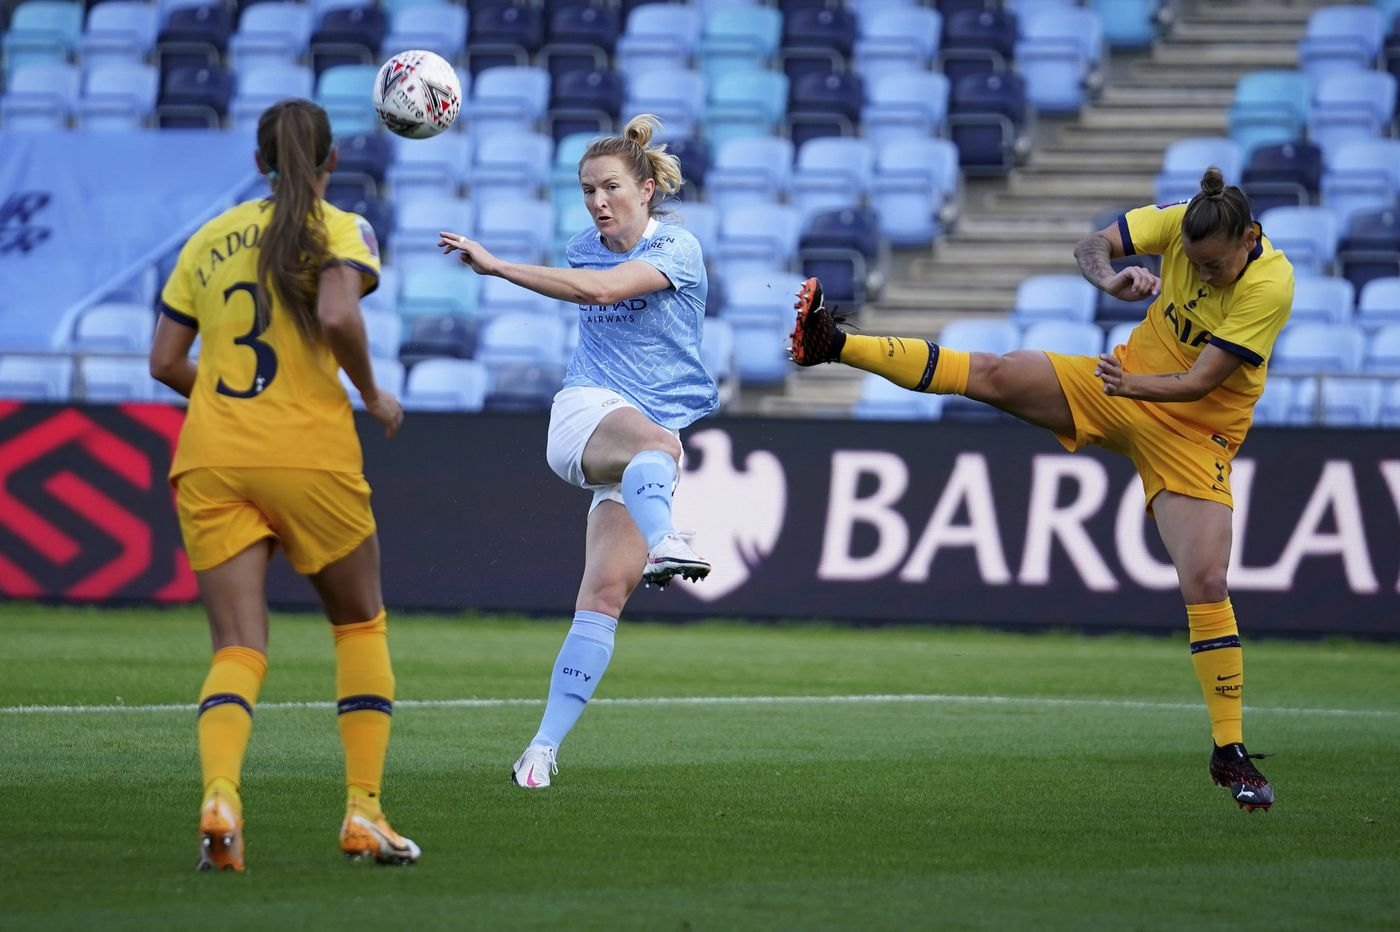 Soccer on TV: NBCSN spotlights USWNT stars in England's FAWSL; big games in UEFA Nations League, NWSL, MLS